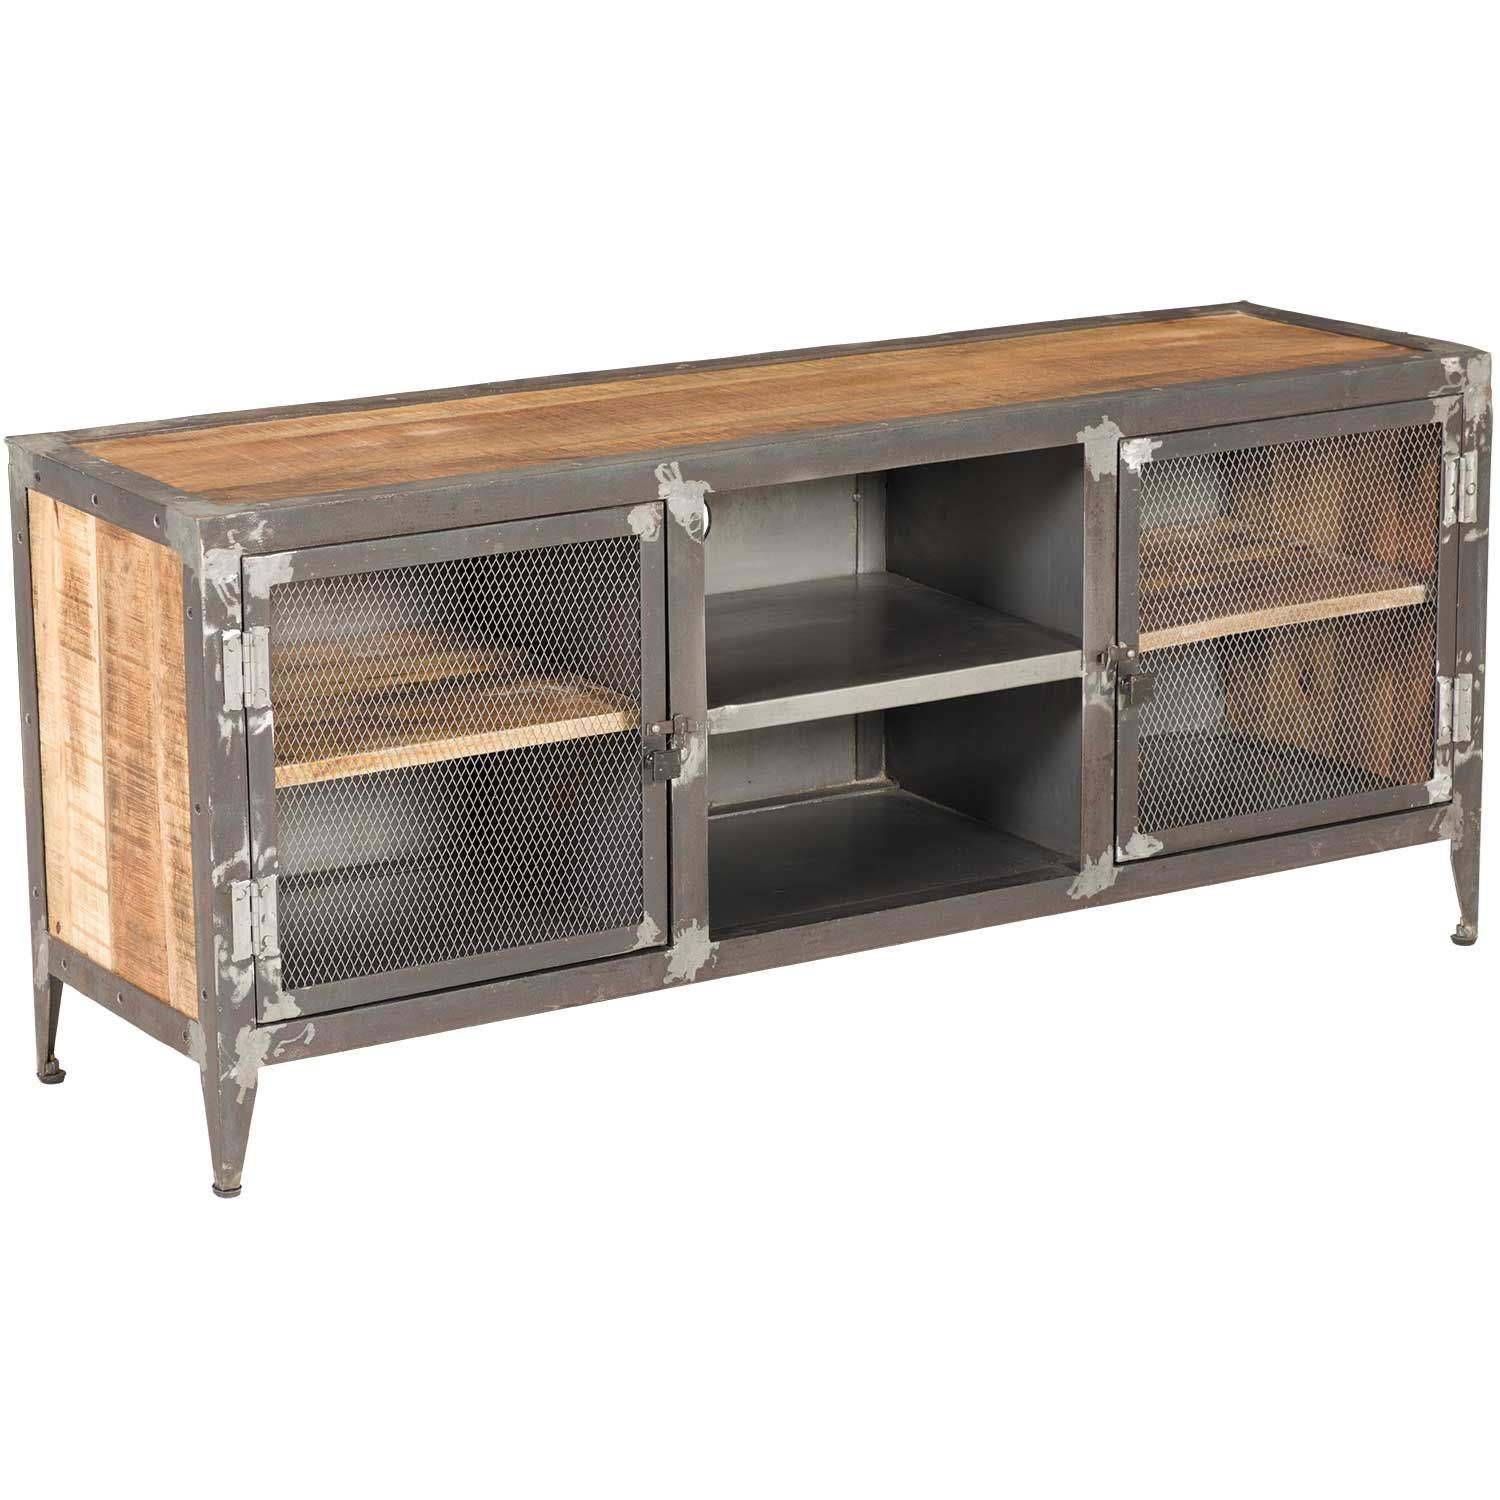 vintage industrial iron and wood tv stand sie a9141 afw. Black Bedroom Furniture Sets. Home Design Ideas